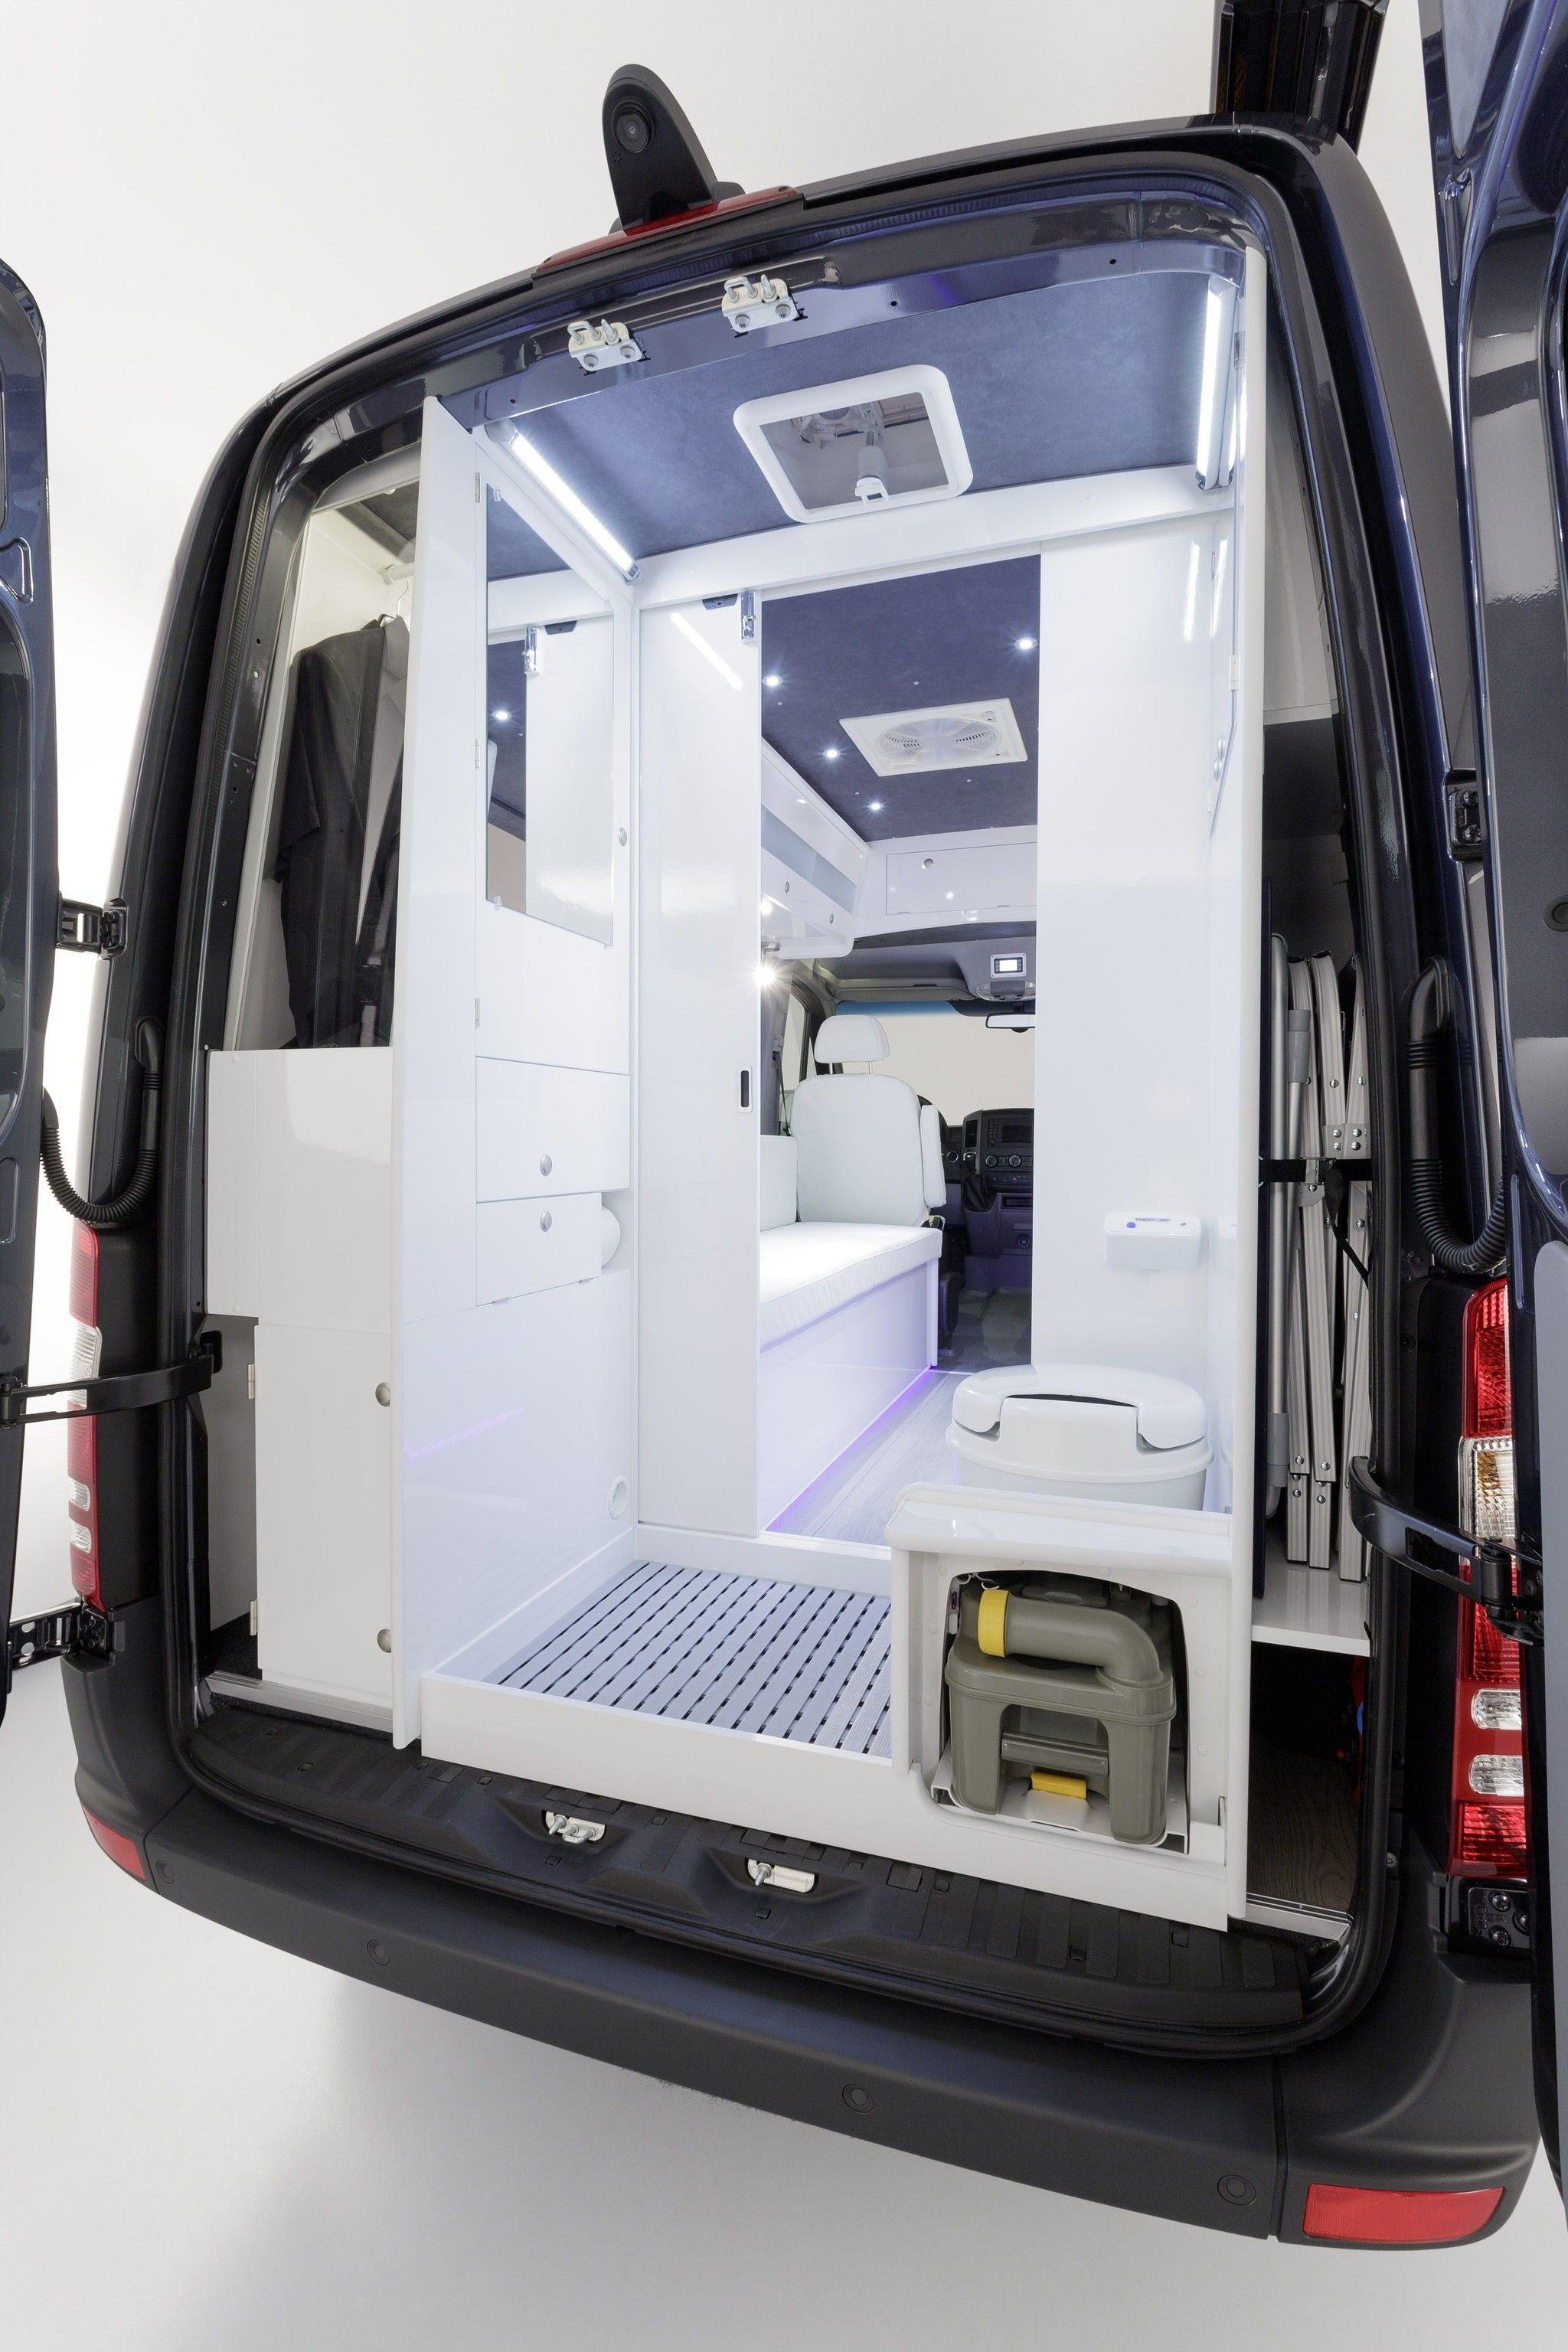 Mercedes sprinter camper bathroom in the cut away mb for Mercedes benz sprinter camper van